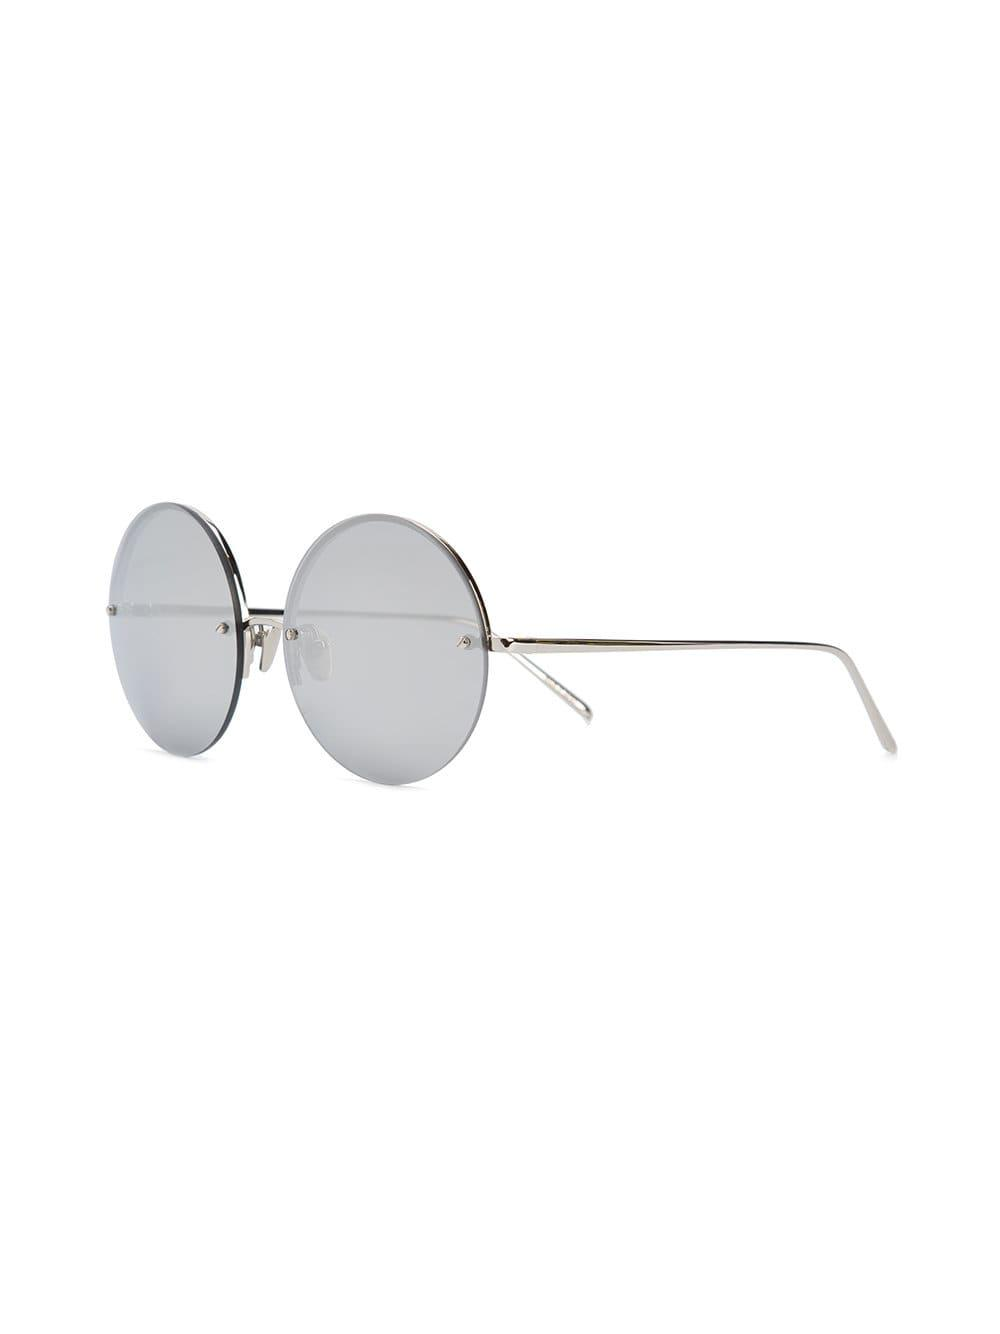 fc37e61c395c Lyst - Linda Farrow White Gold-plated Round Frame Sunglasses in Gray - Save  59.56482320942883%